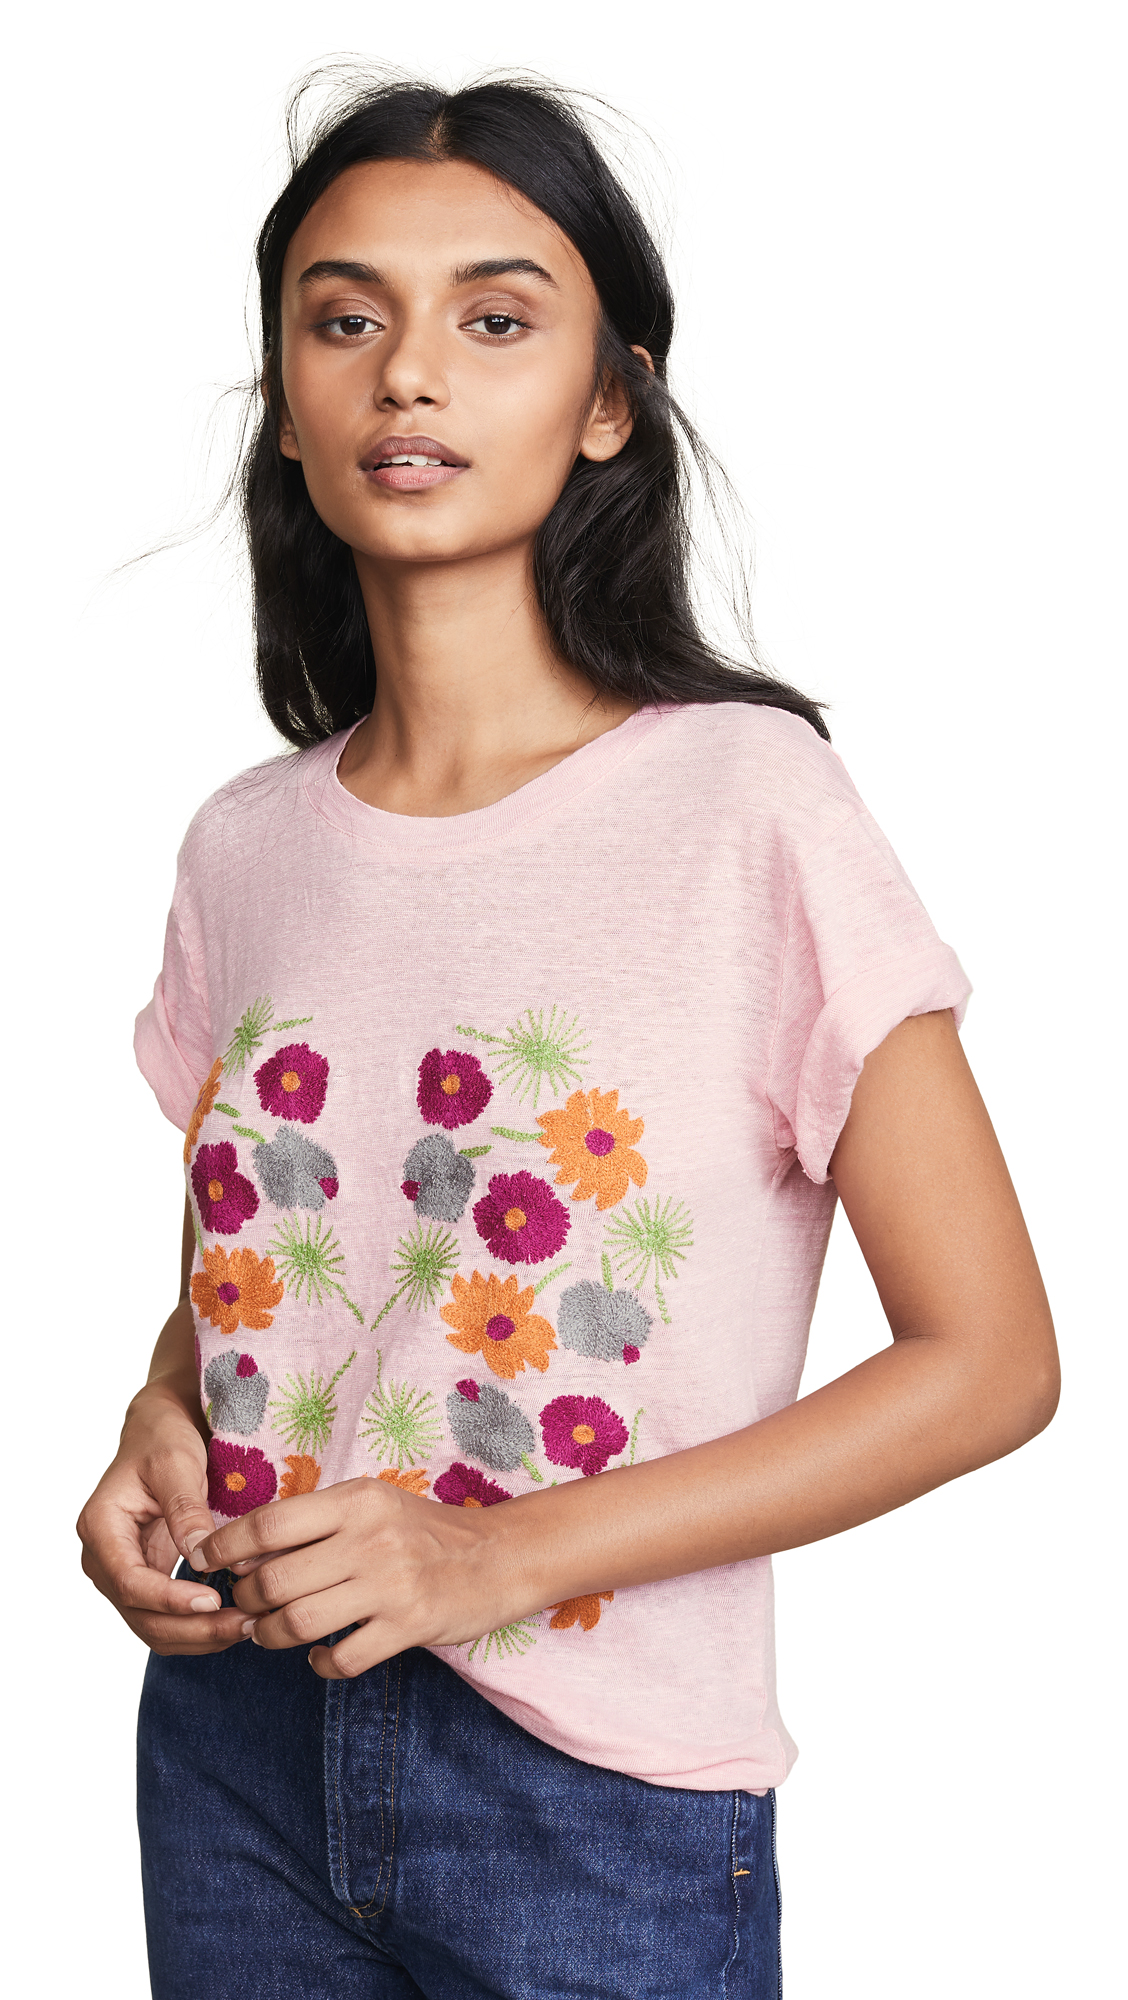 BANNER DAY Flower Print Tee in Pink